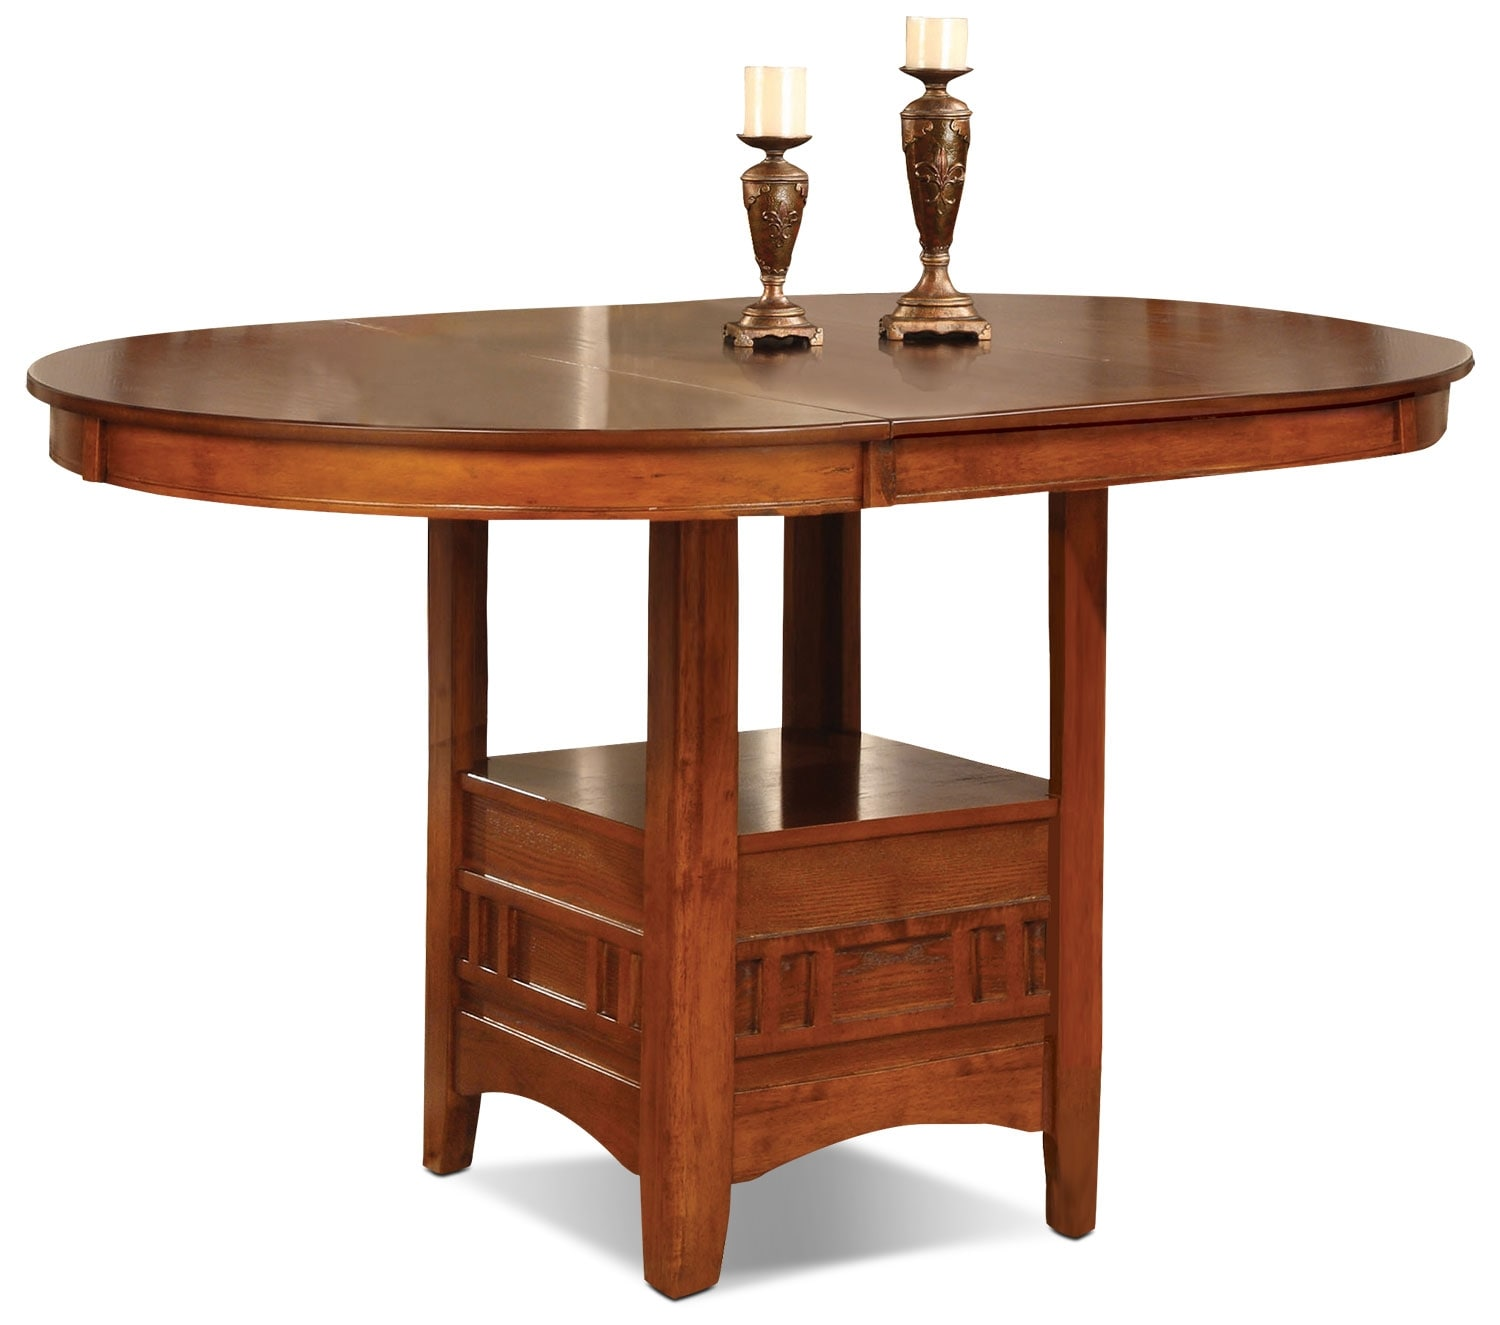 Dining Room Furniture - Dalton Oak Counter-Height Table